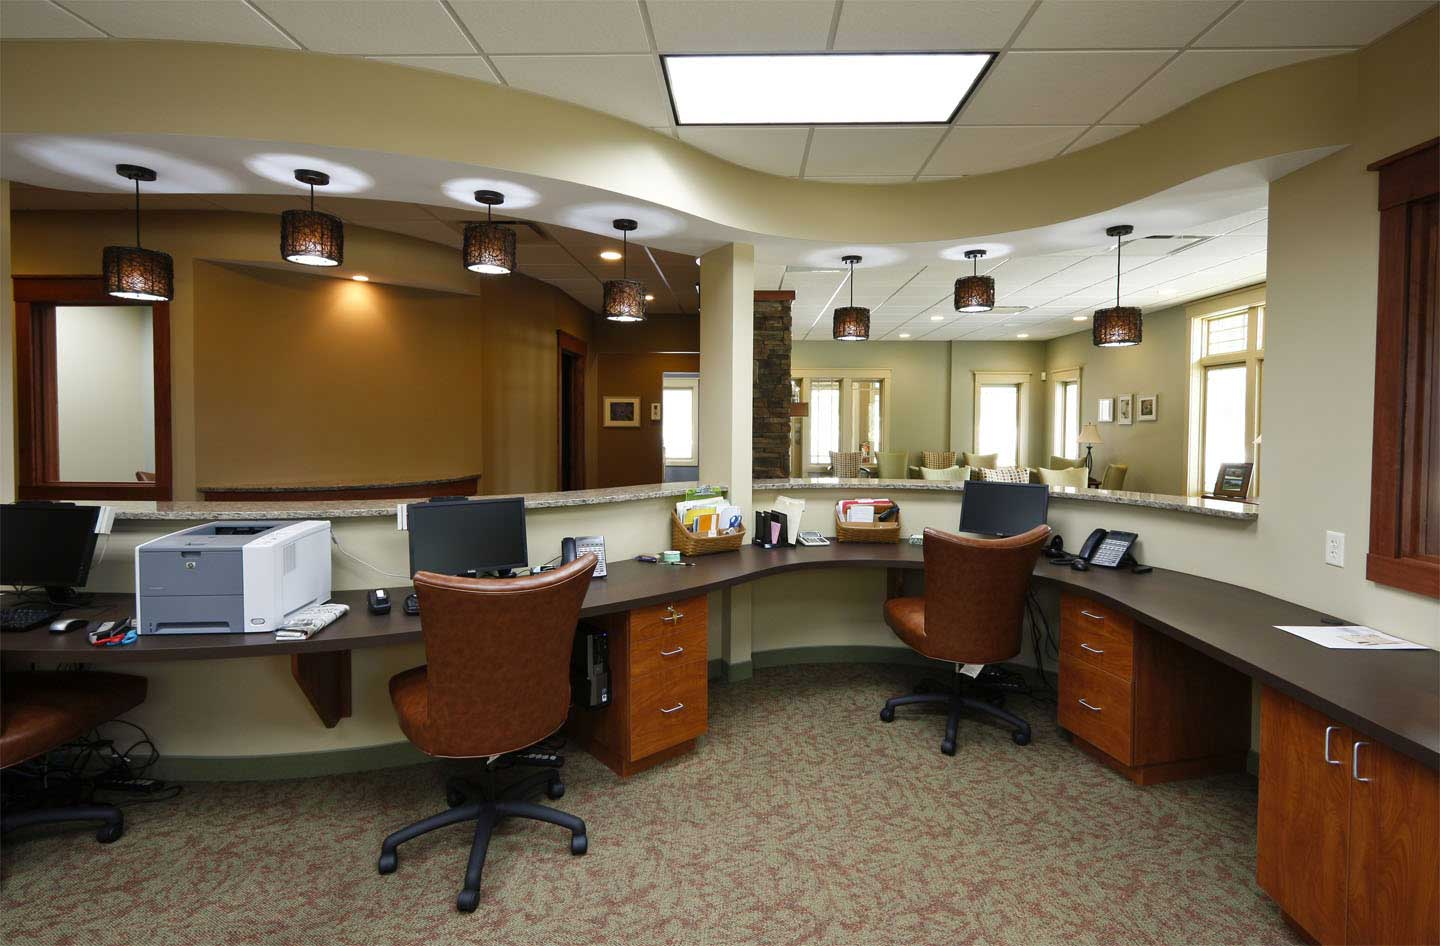 krish group how office interior colour and design help low screeners reported more dyspepsia in are the effects of the work environment the place where the red and white offices than high screeners